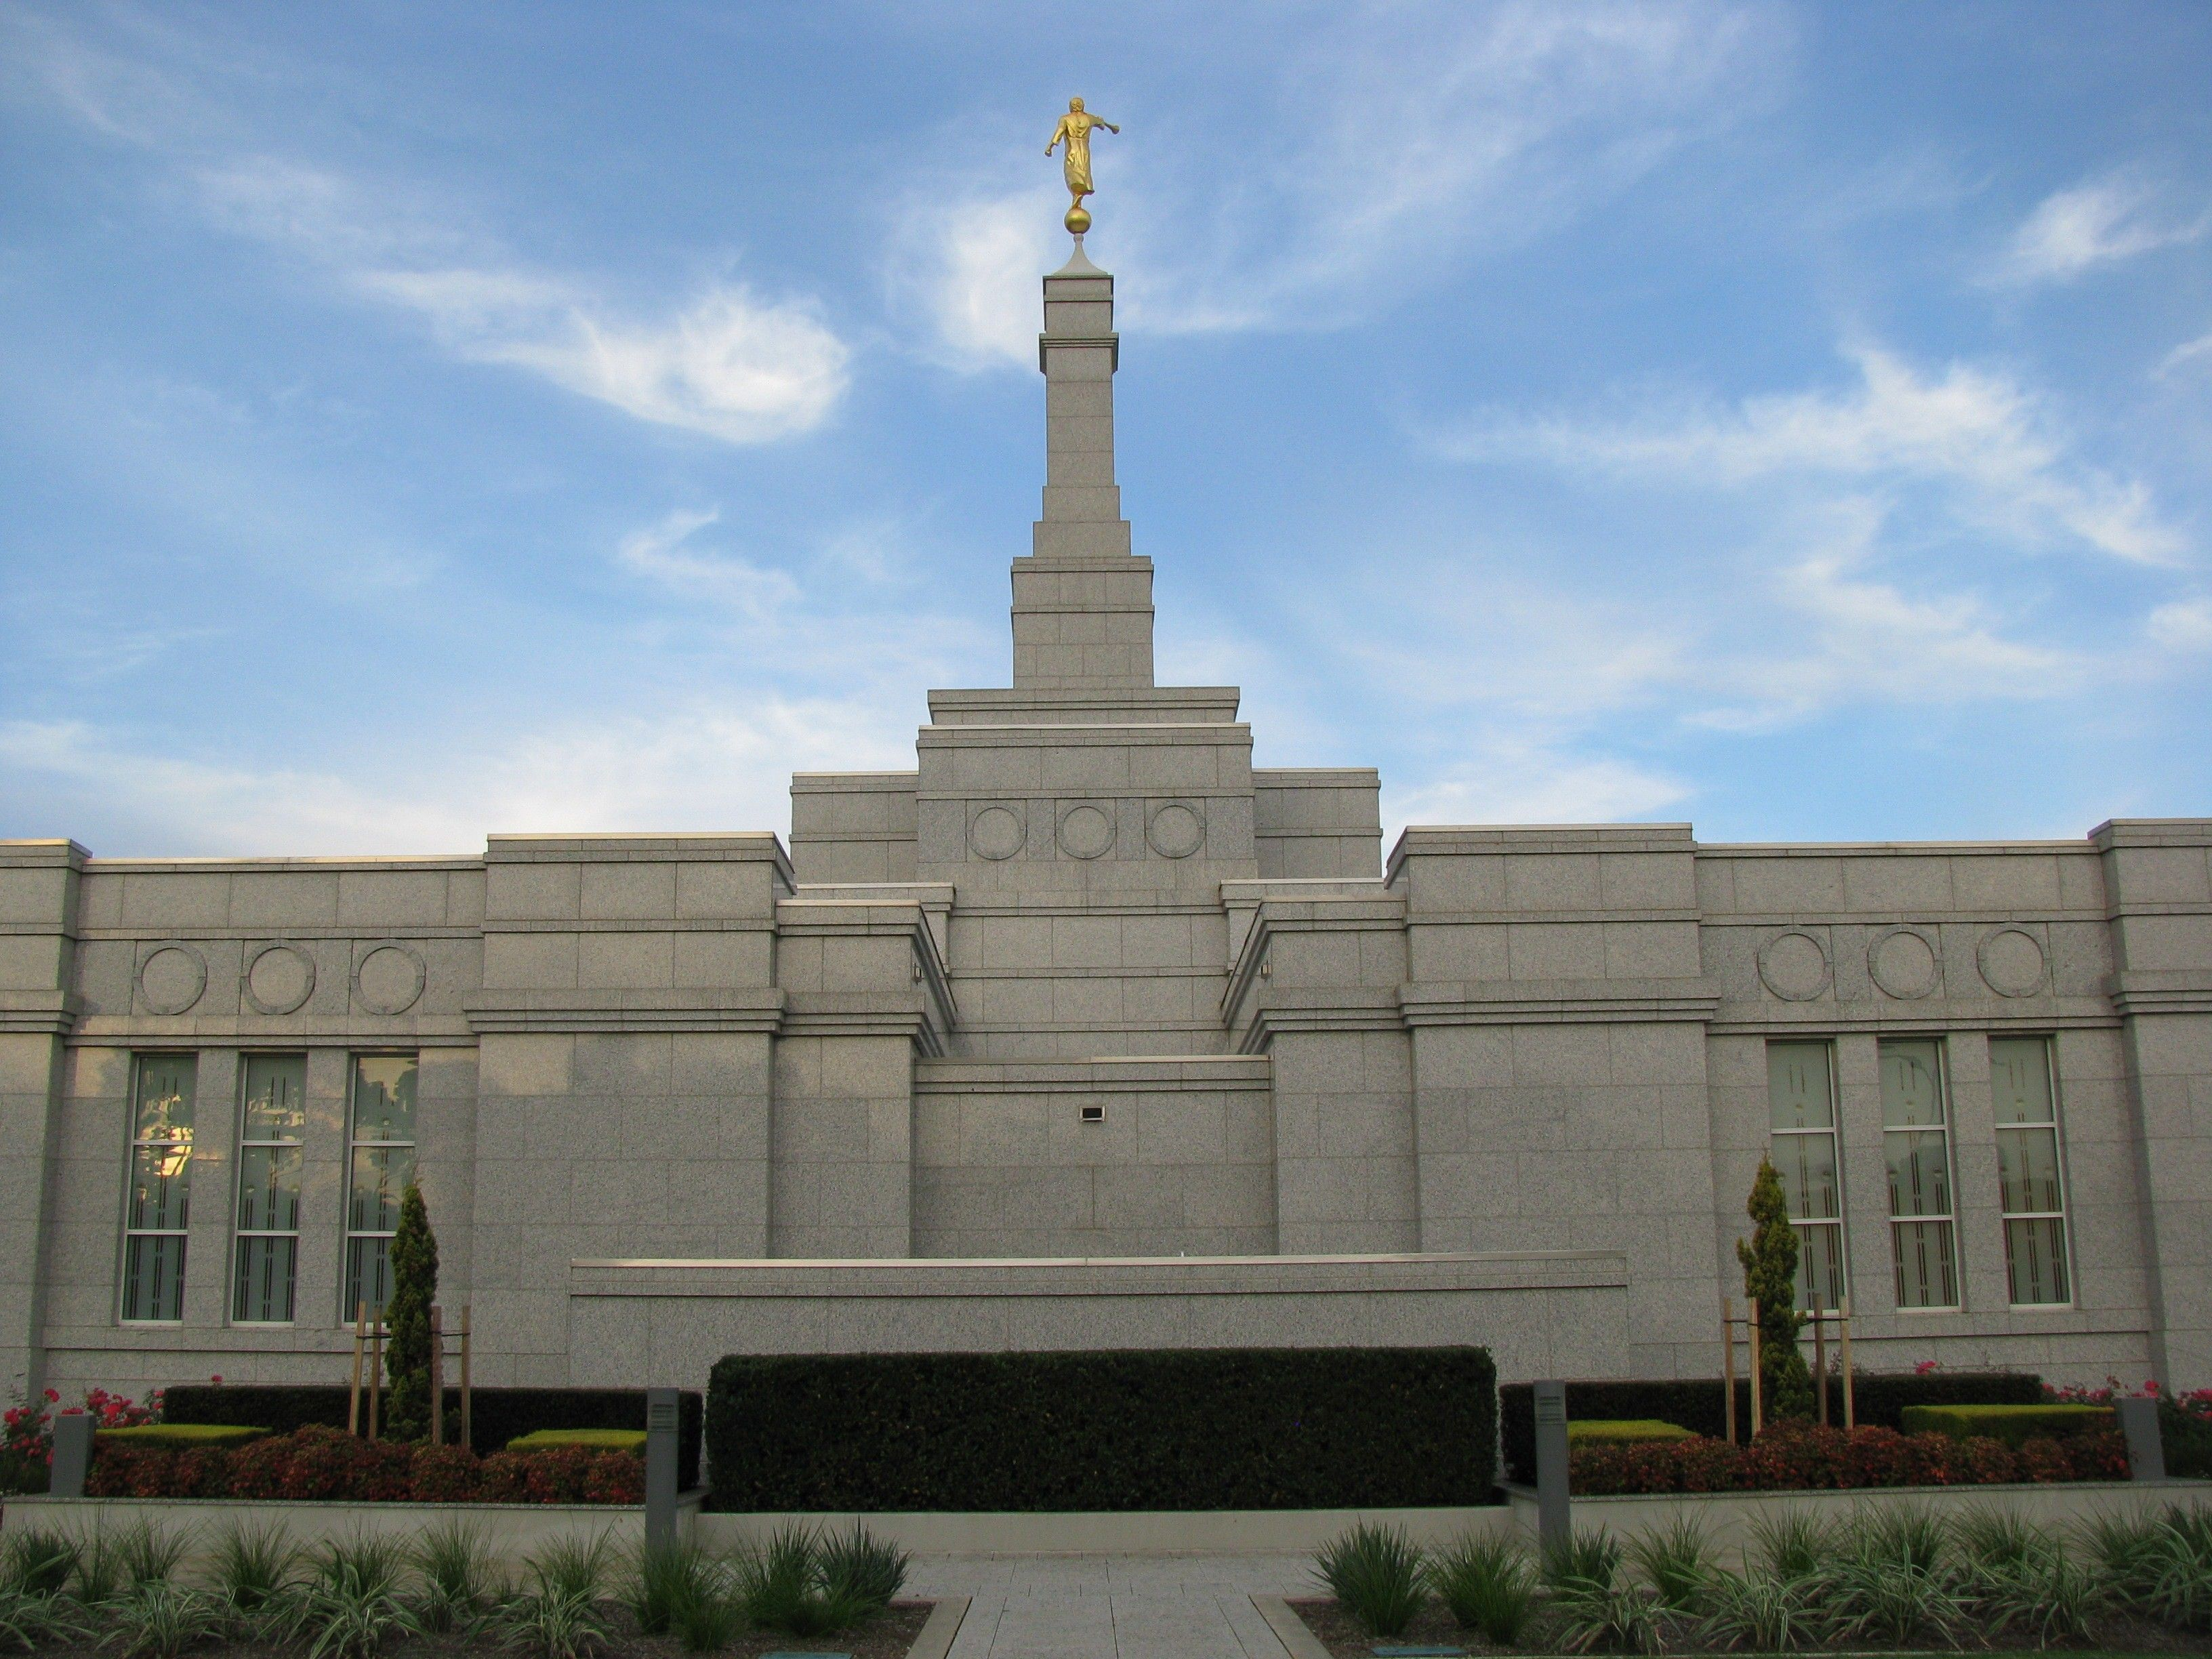 The exterior view of the back of the Adelaide Australia Temple.